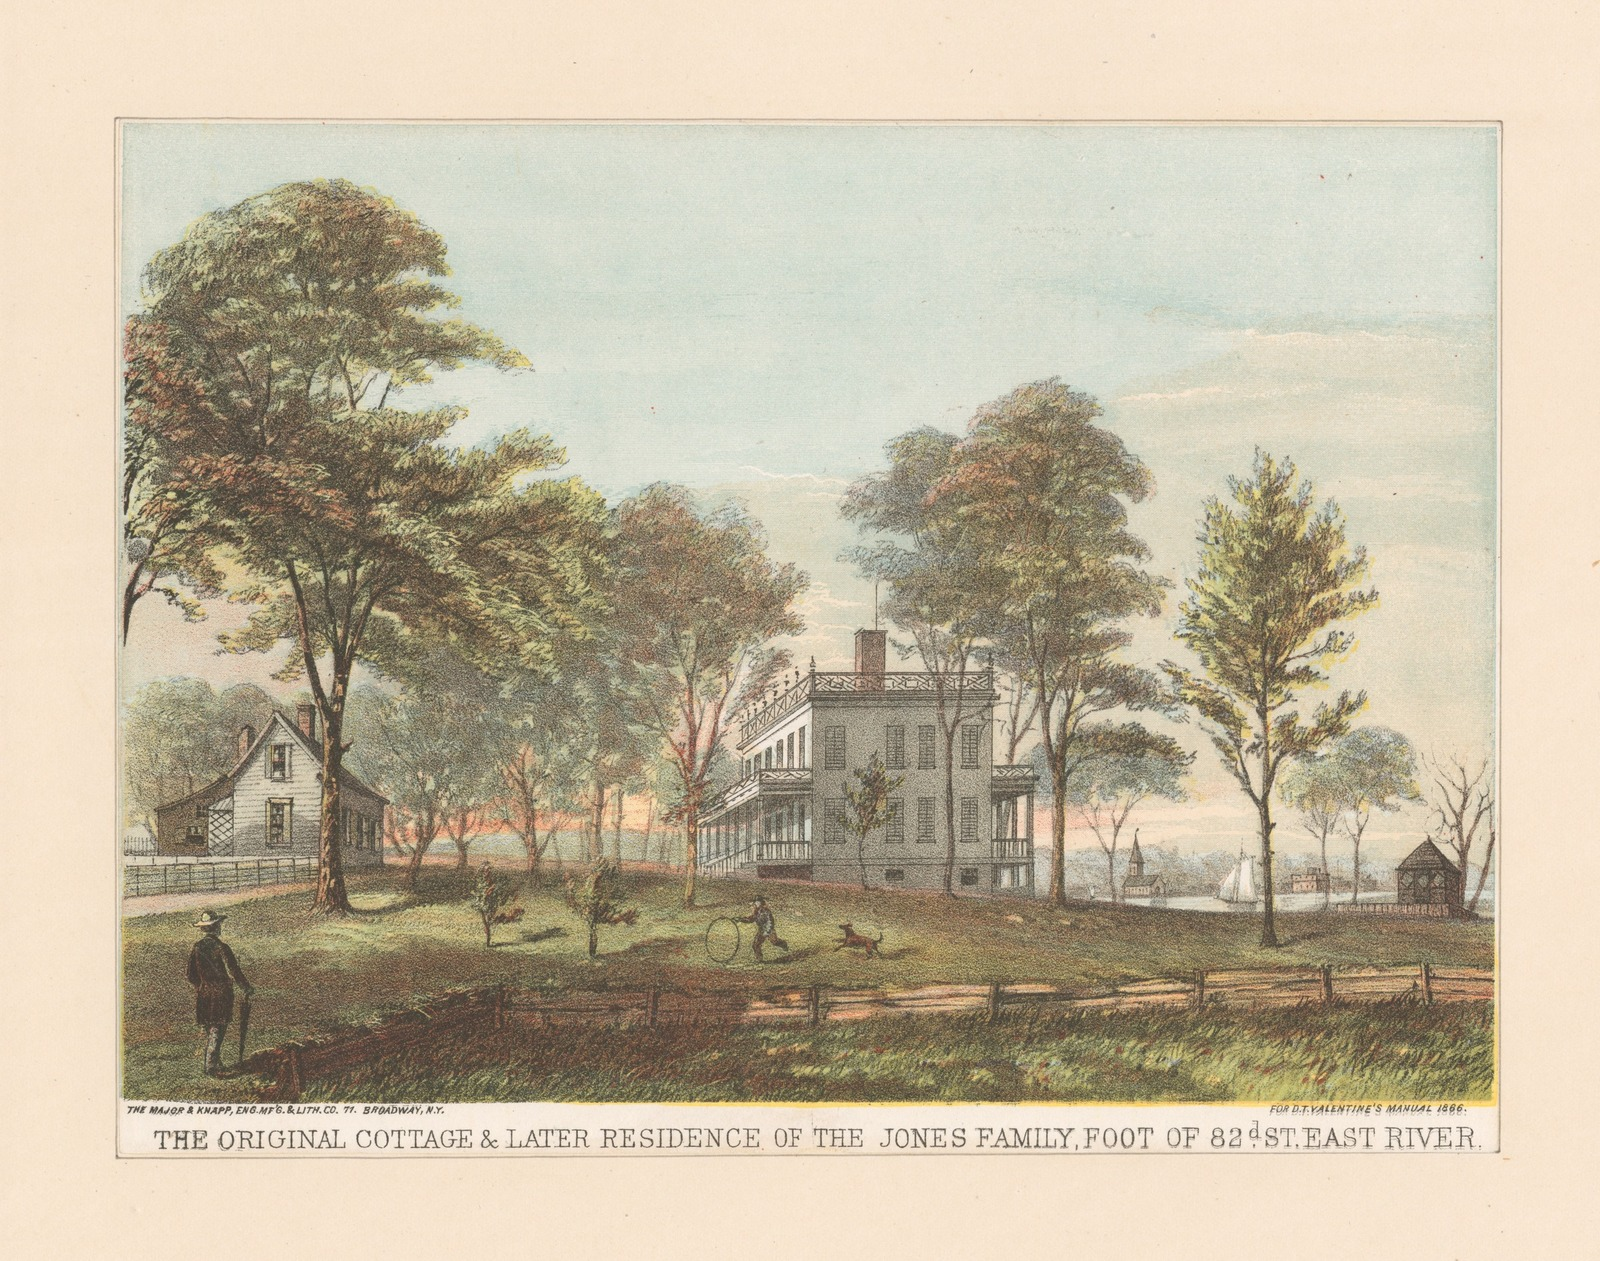 The Original Cottage & Later Residence of the Jones Family, foot of 82nd St. East River